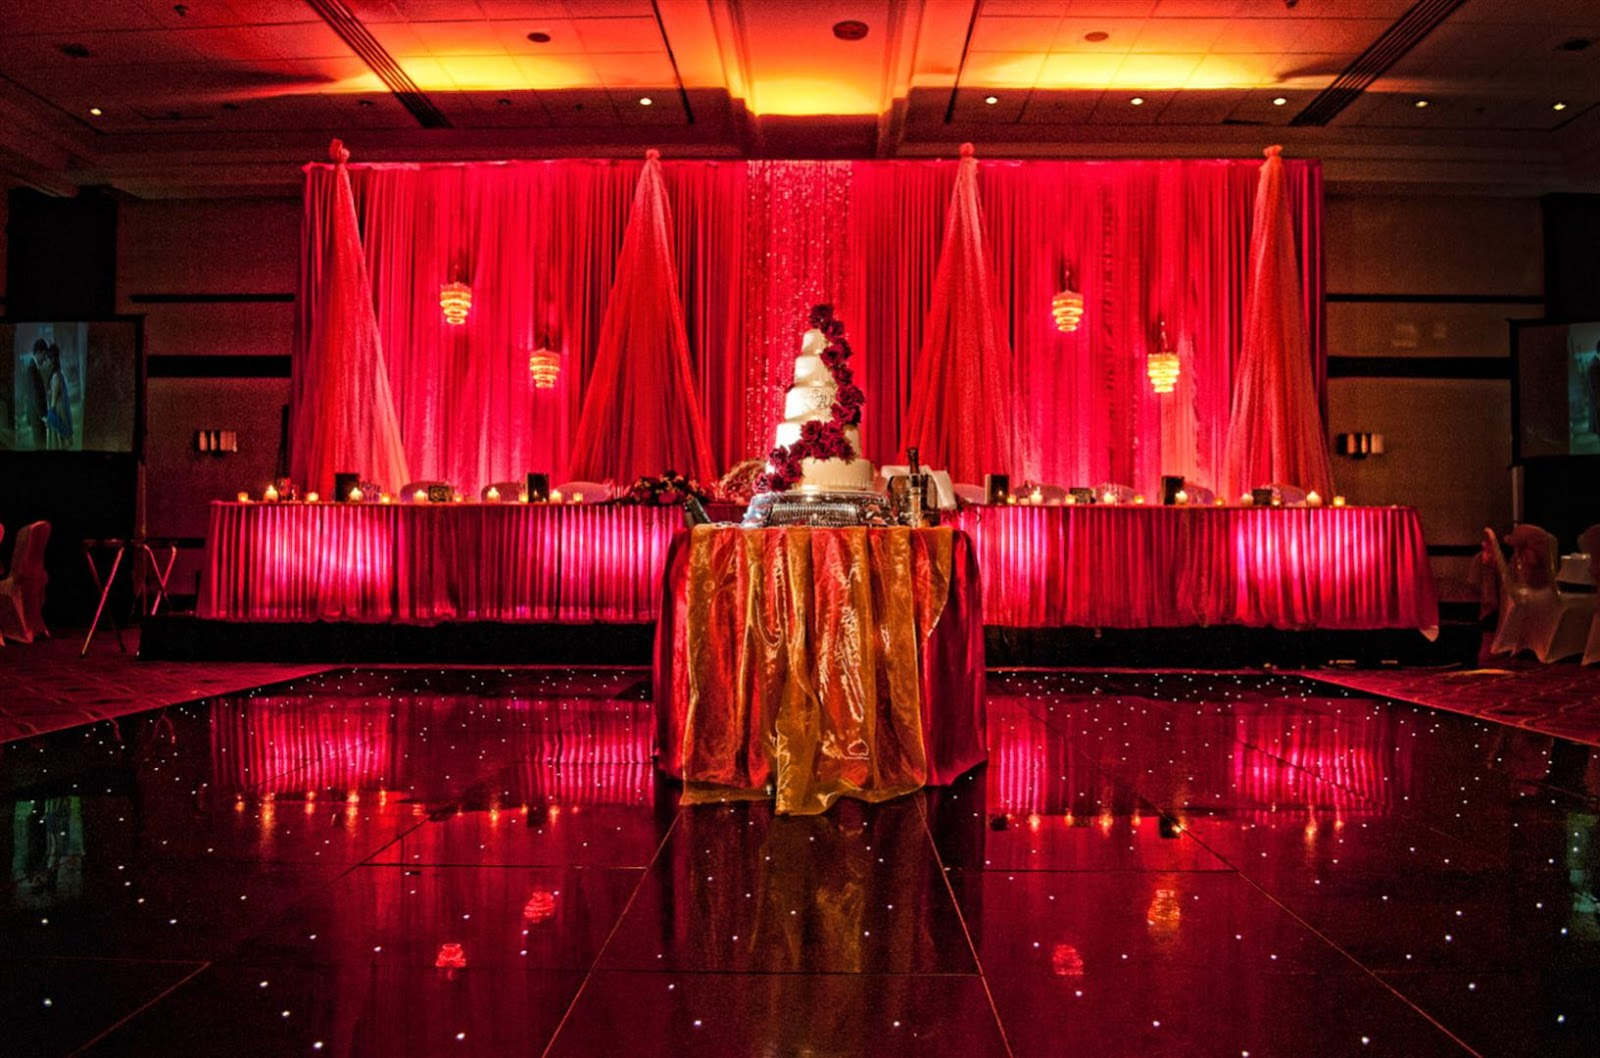 Mazs blog our favourite in asian wedding decorations in birmingham we had a really fun year in 2012 and thought we would share some of our favourite indian wedding decorations that we created in each town junglespirit Images